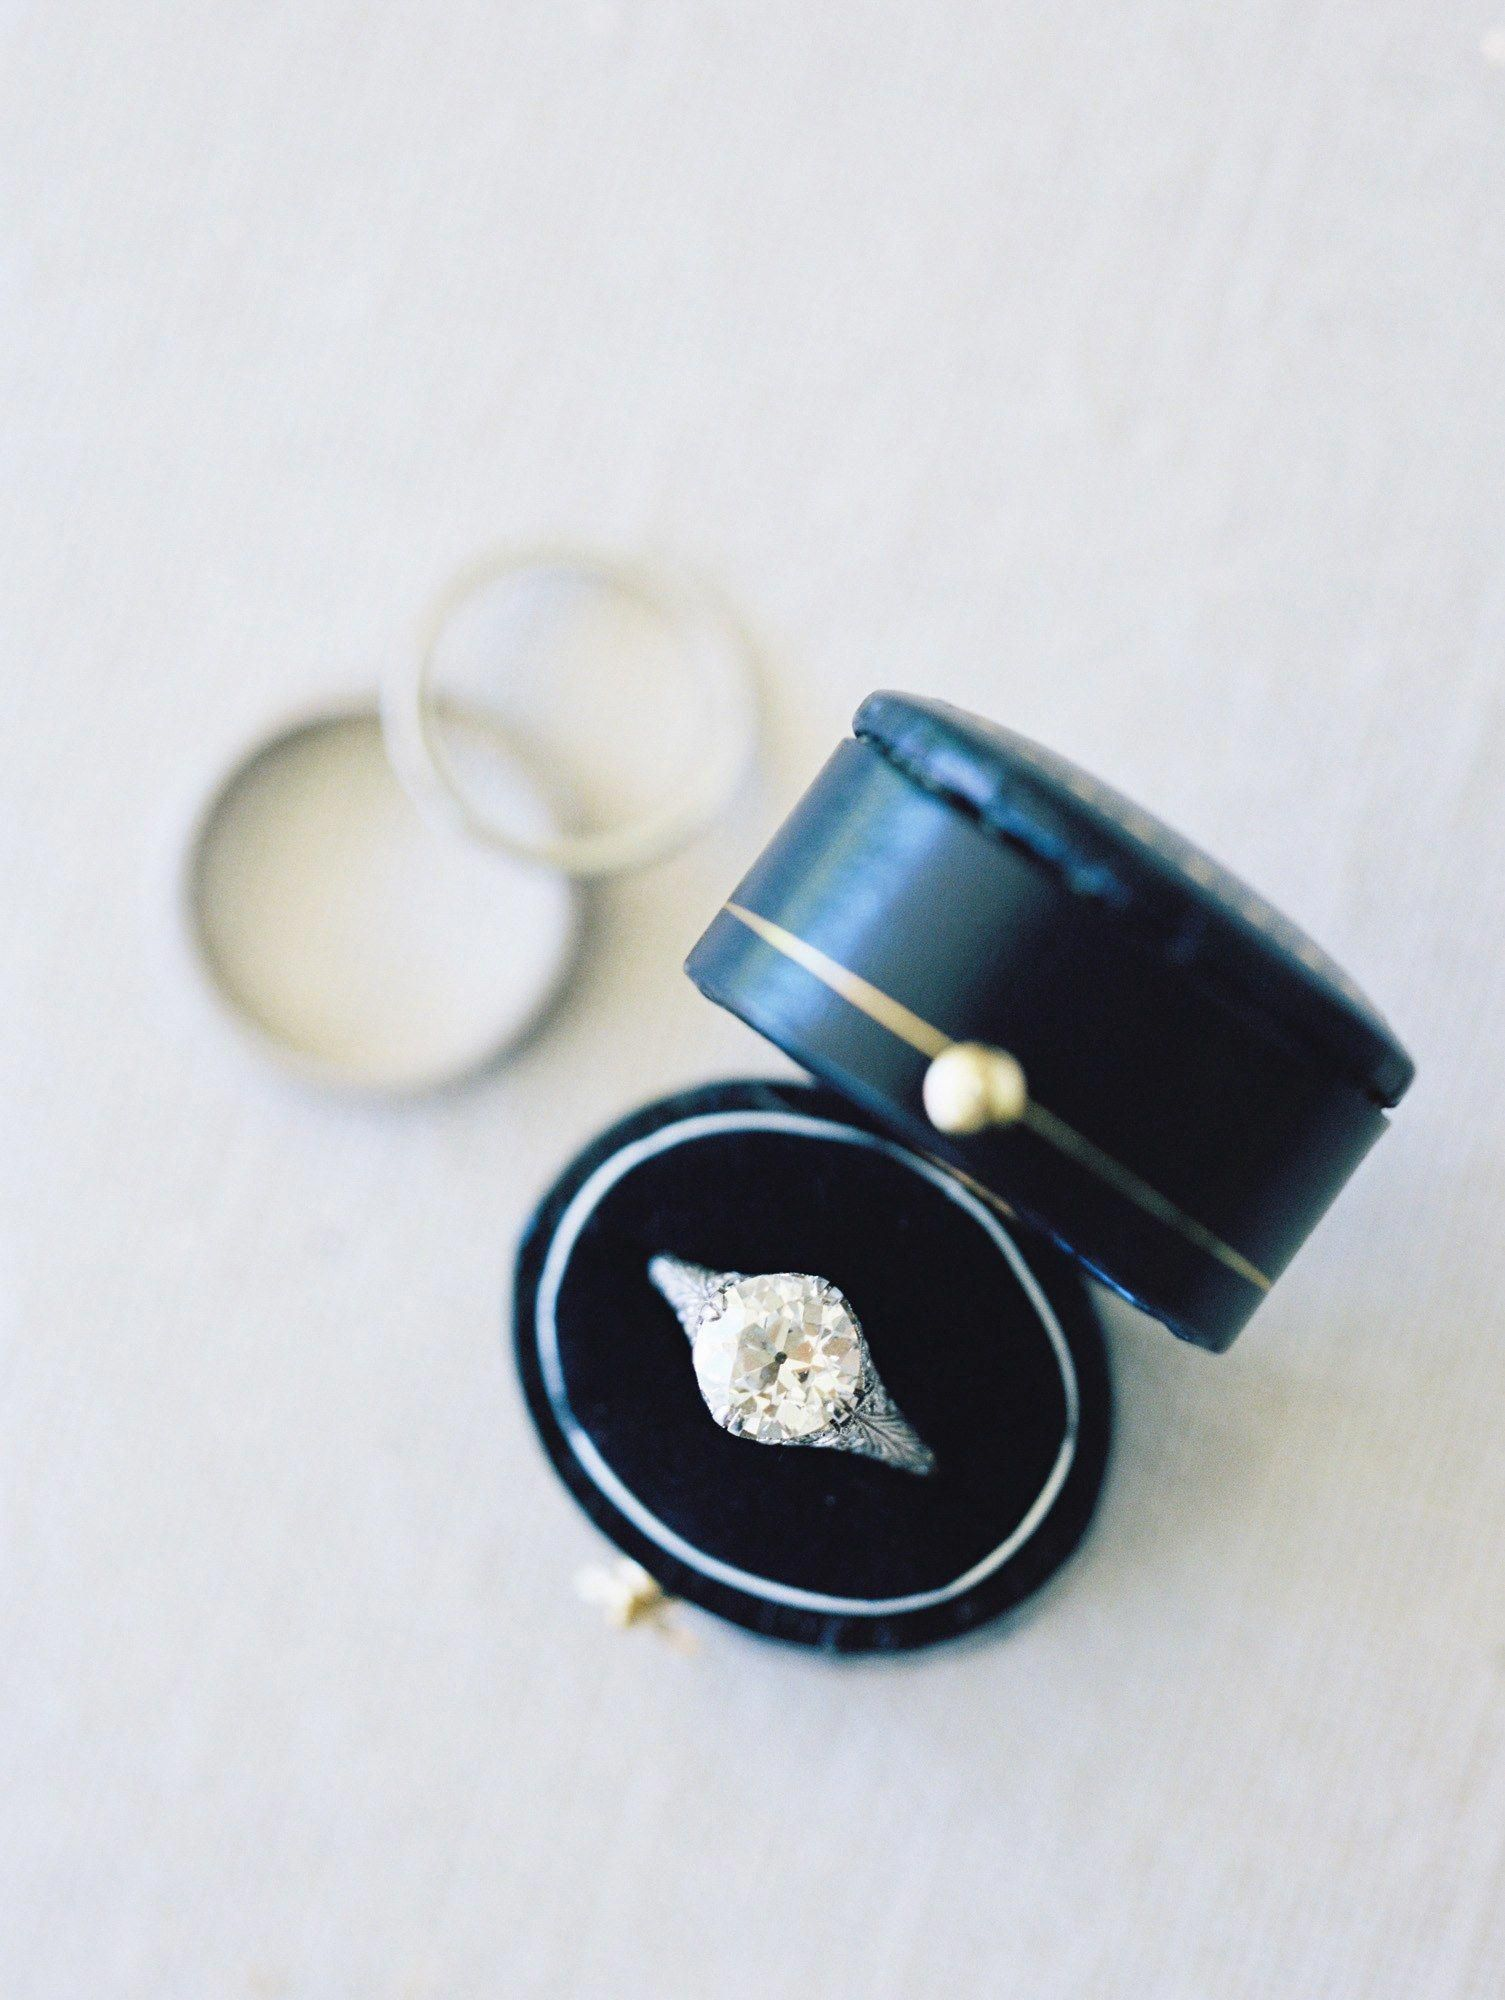 We pinned down the difference between an engagement ring